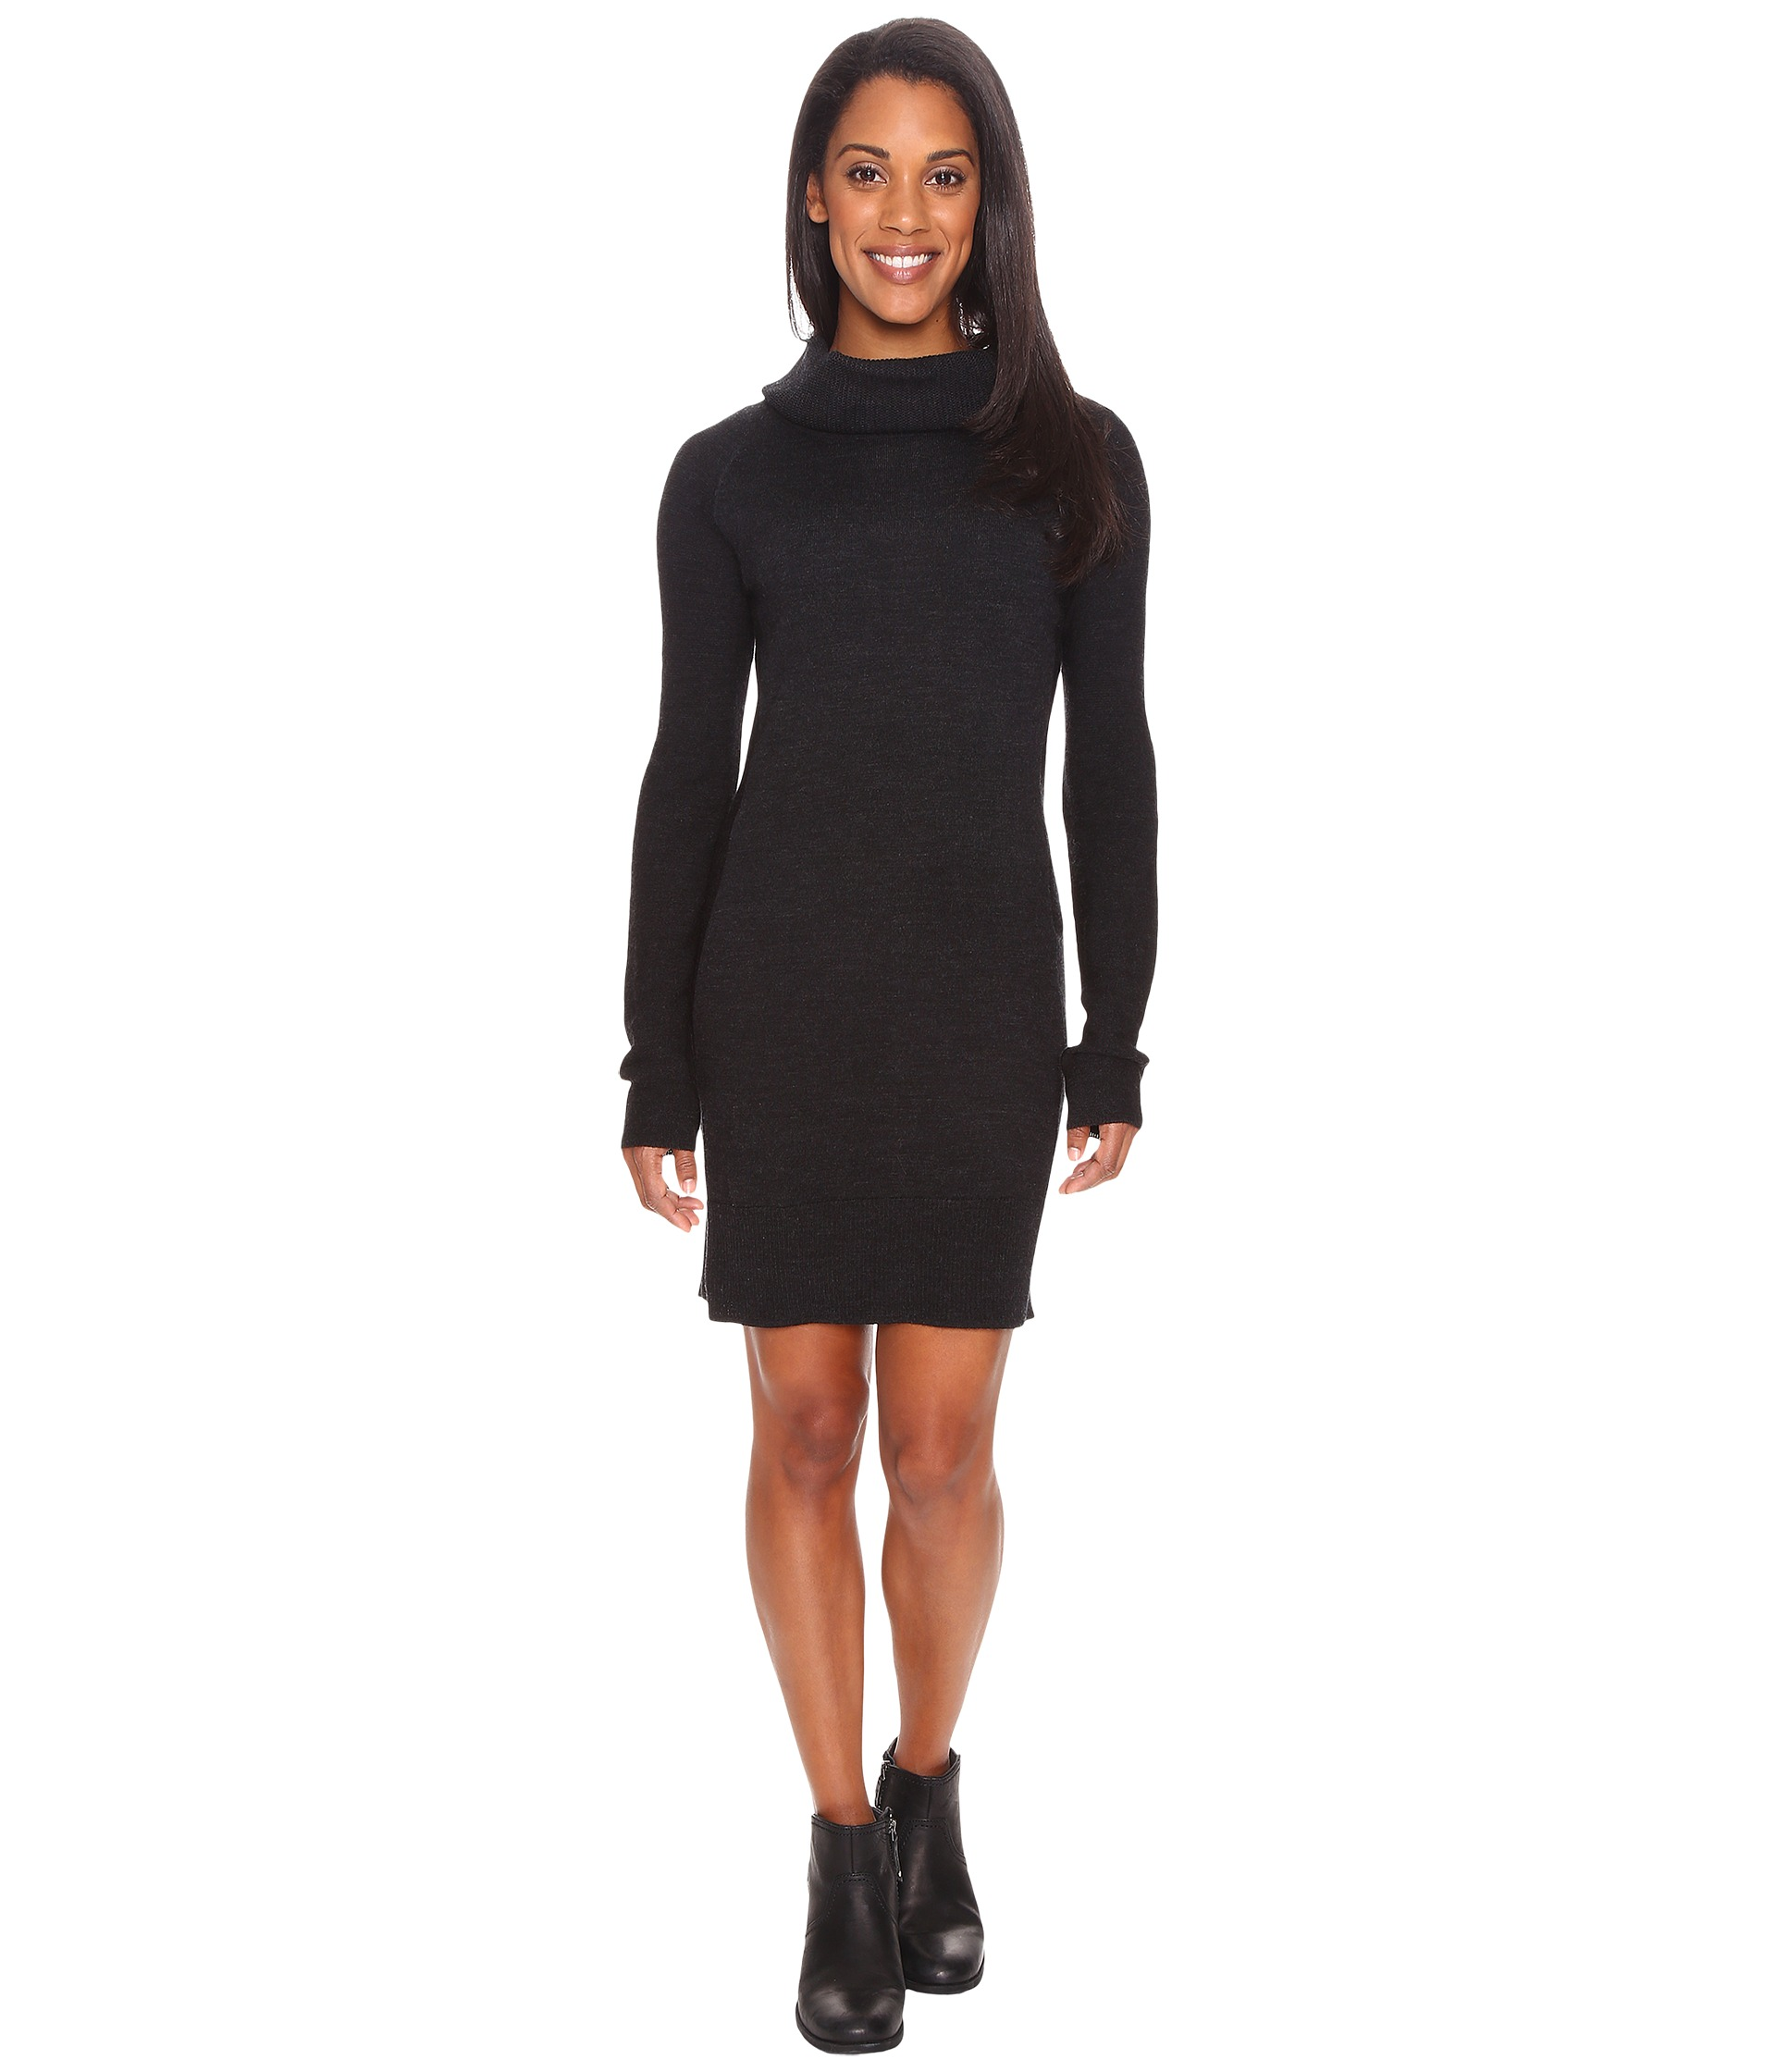 Shop sweaters on sale plus get fashion tips from FP Me stylists worldwide! Buy now and get free shipping – see site for details.